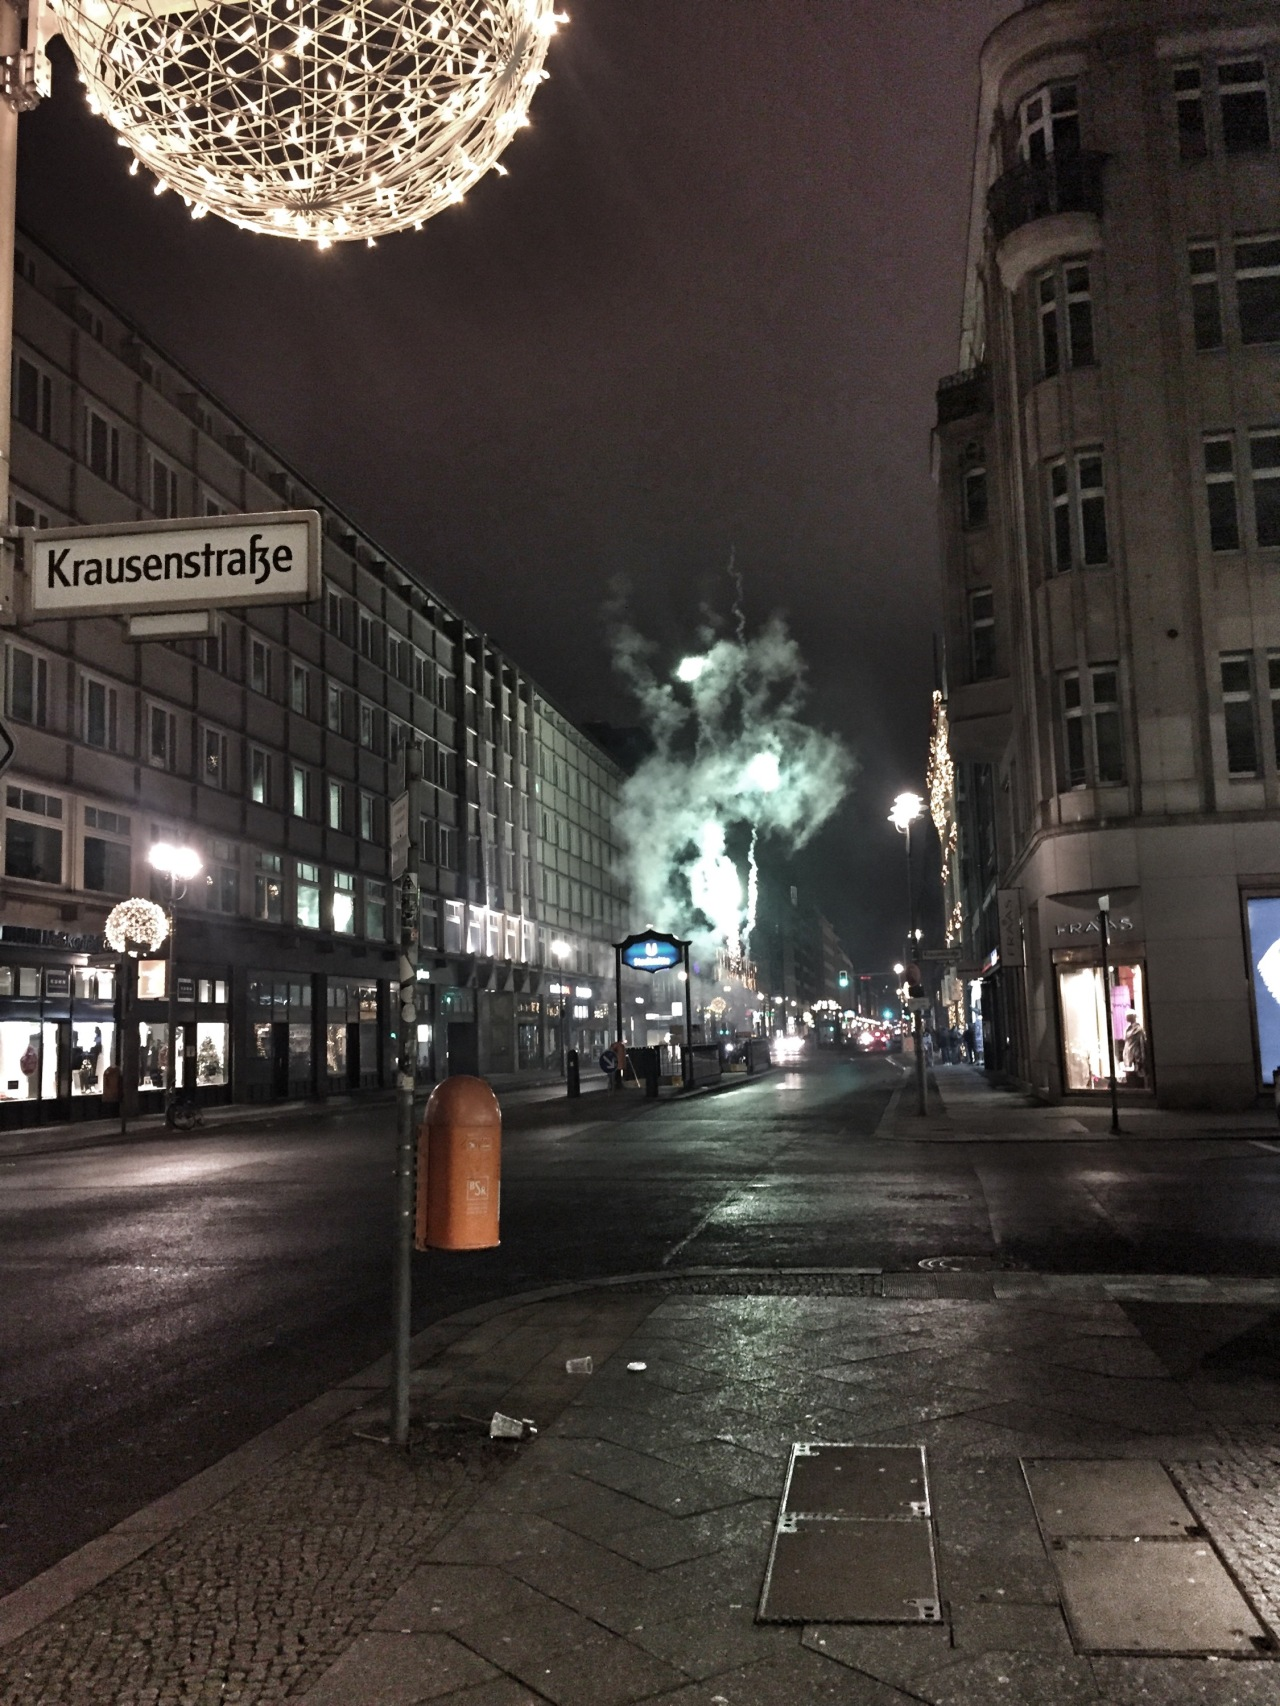 New Years In Berlin – Street Drinking & Fireworks, what could possibly go wrong?